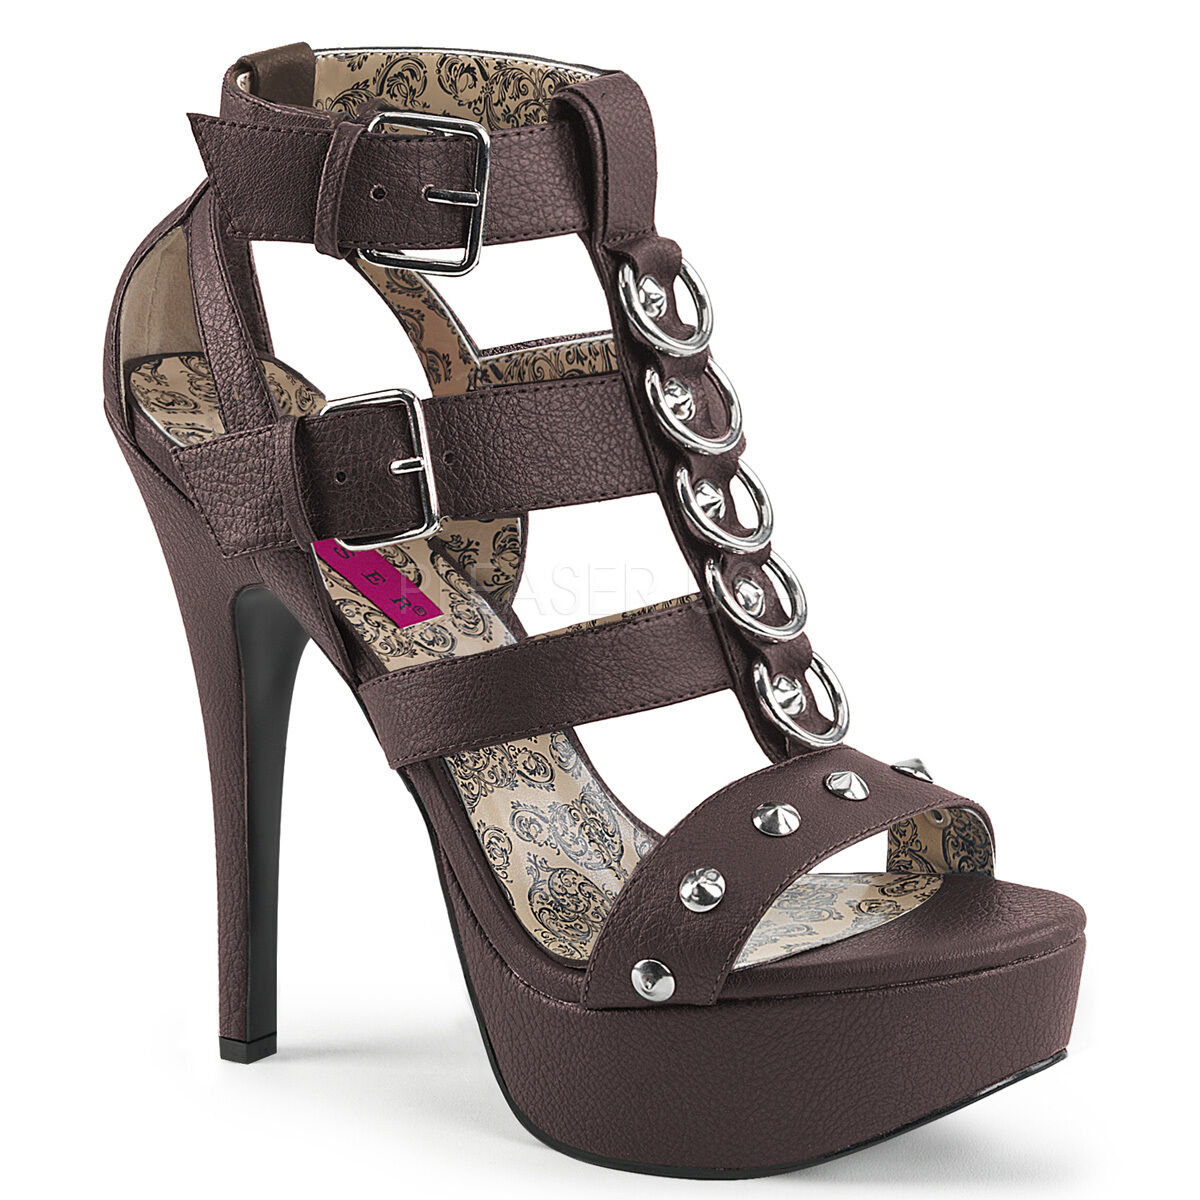 PLEASER Sexy WIDE WIDTH Brown shoes Platform T-Strap Sandals w  Metal Rings